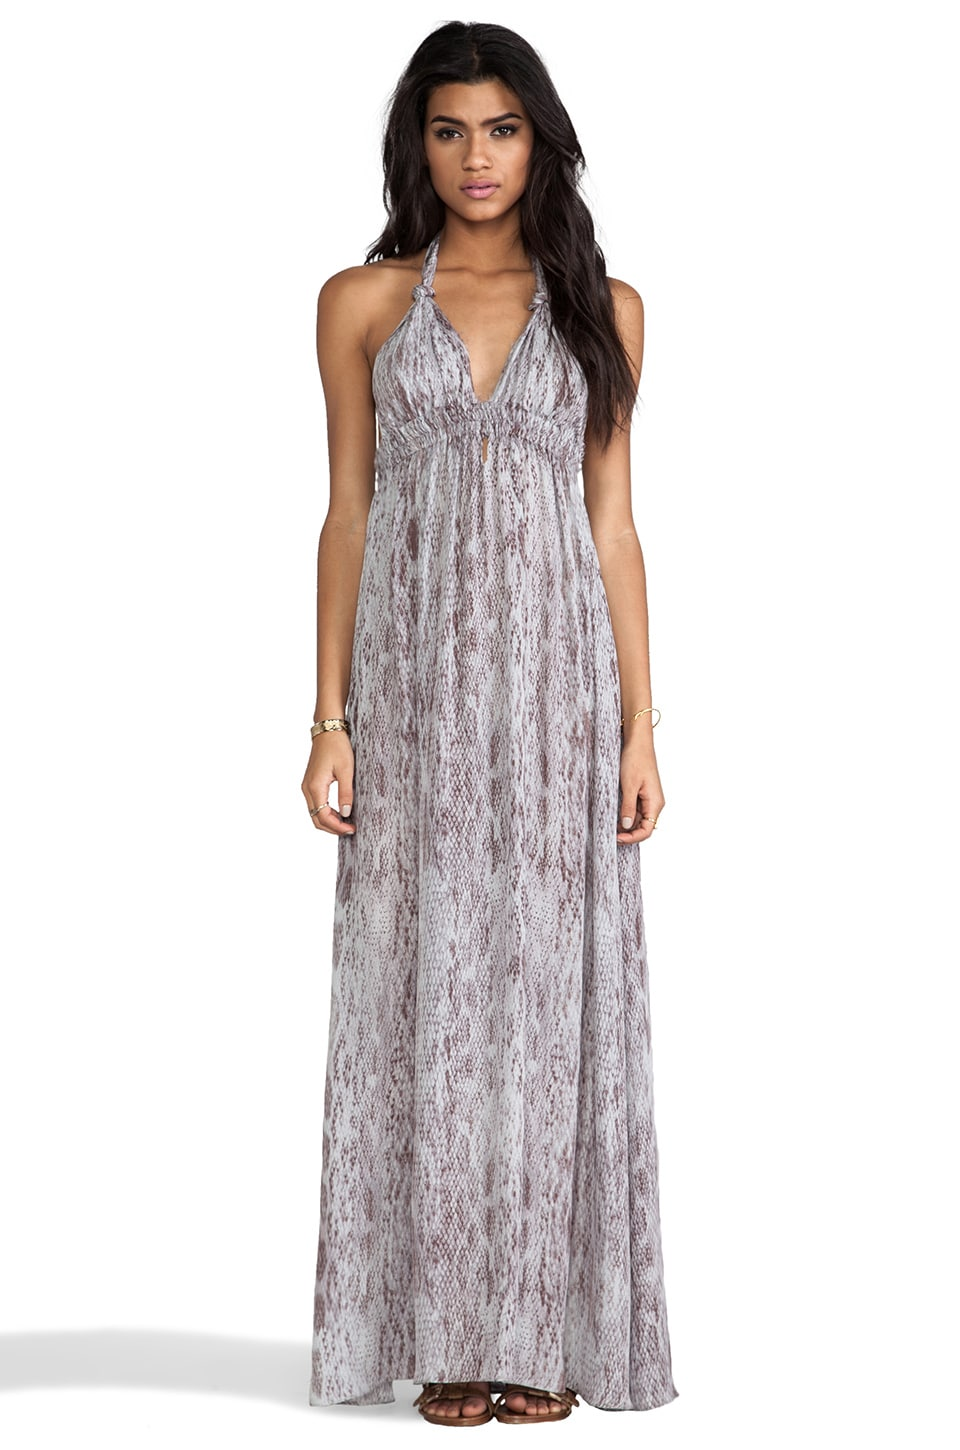 LoveShackFancy Love Shack Fancy Love Maxi Dress in Blue Grey Watersnake